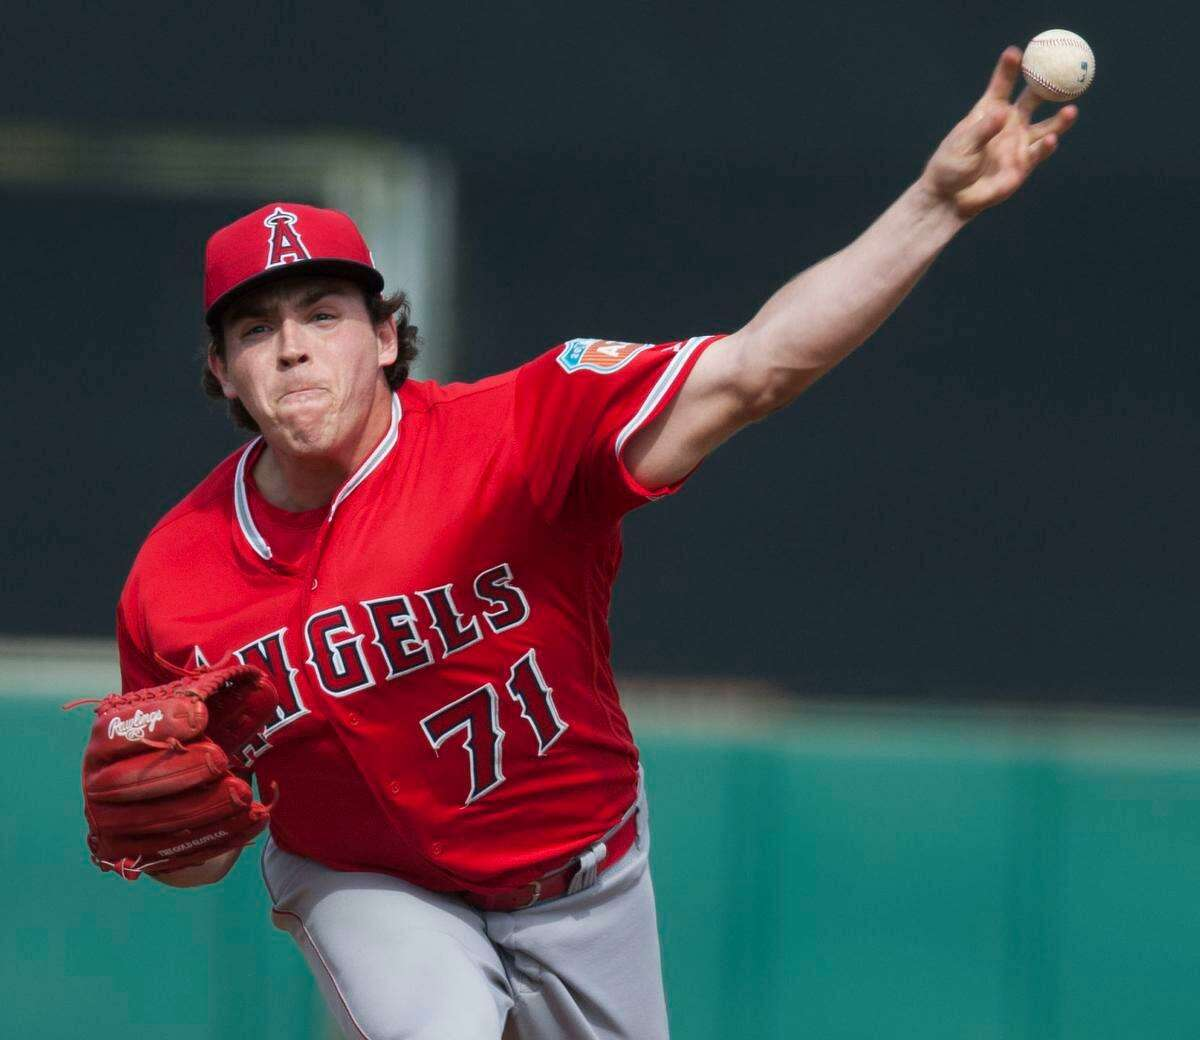 The Tecolotes Dos Laredos acquired pitcher Greg Mahle last Friday.